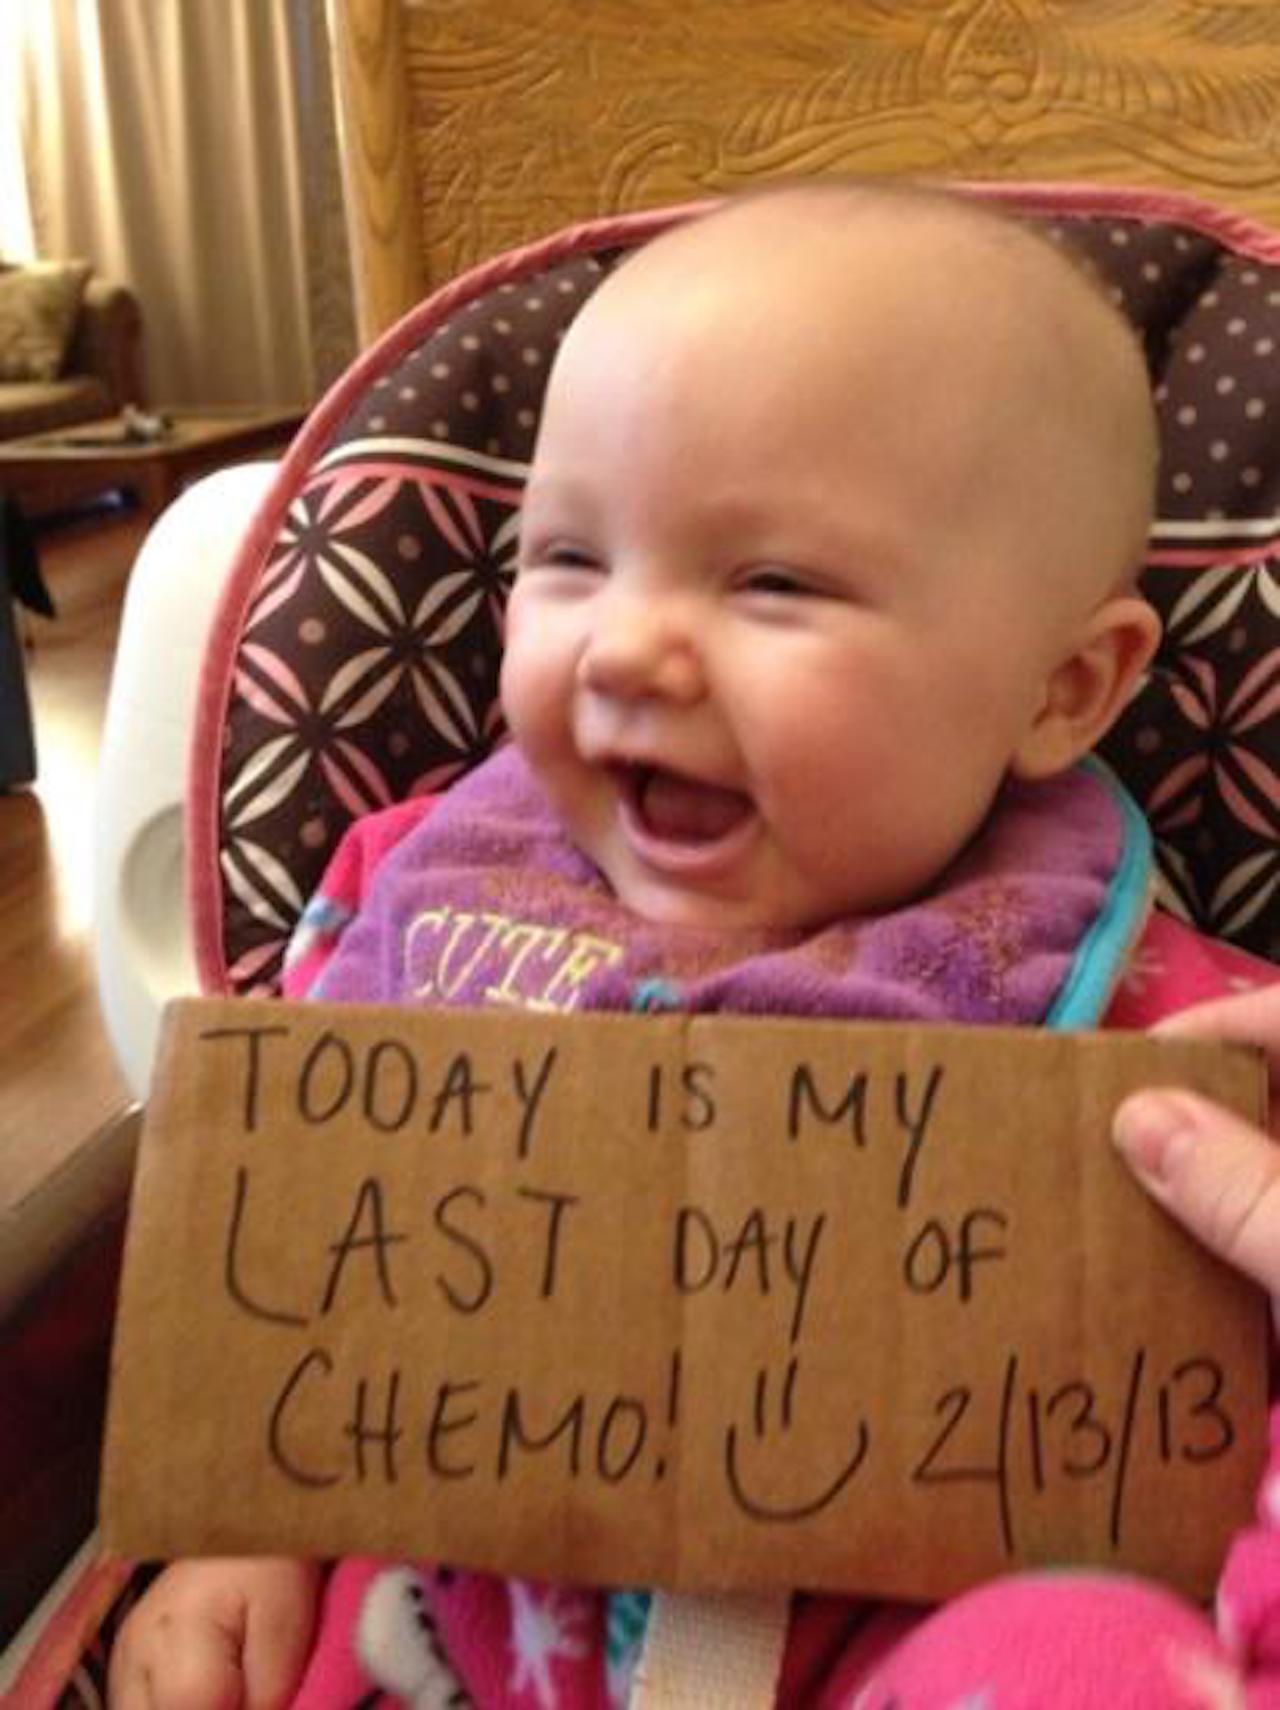 baby on her last day of chemo